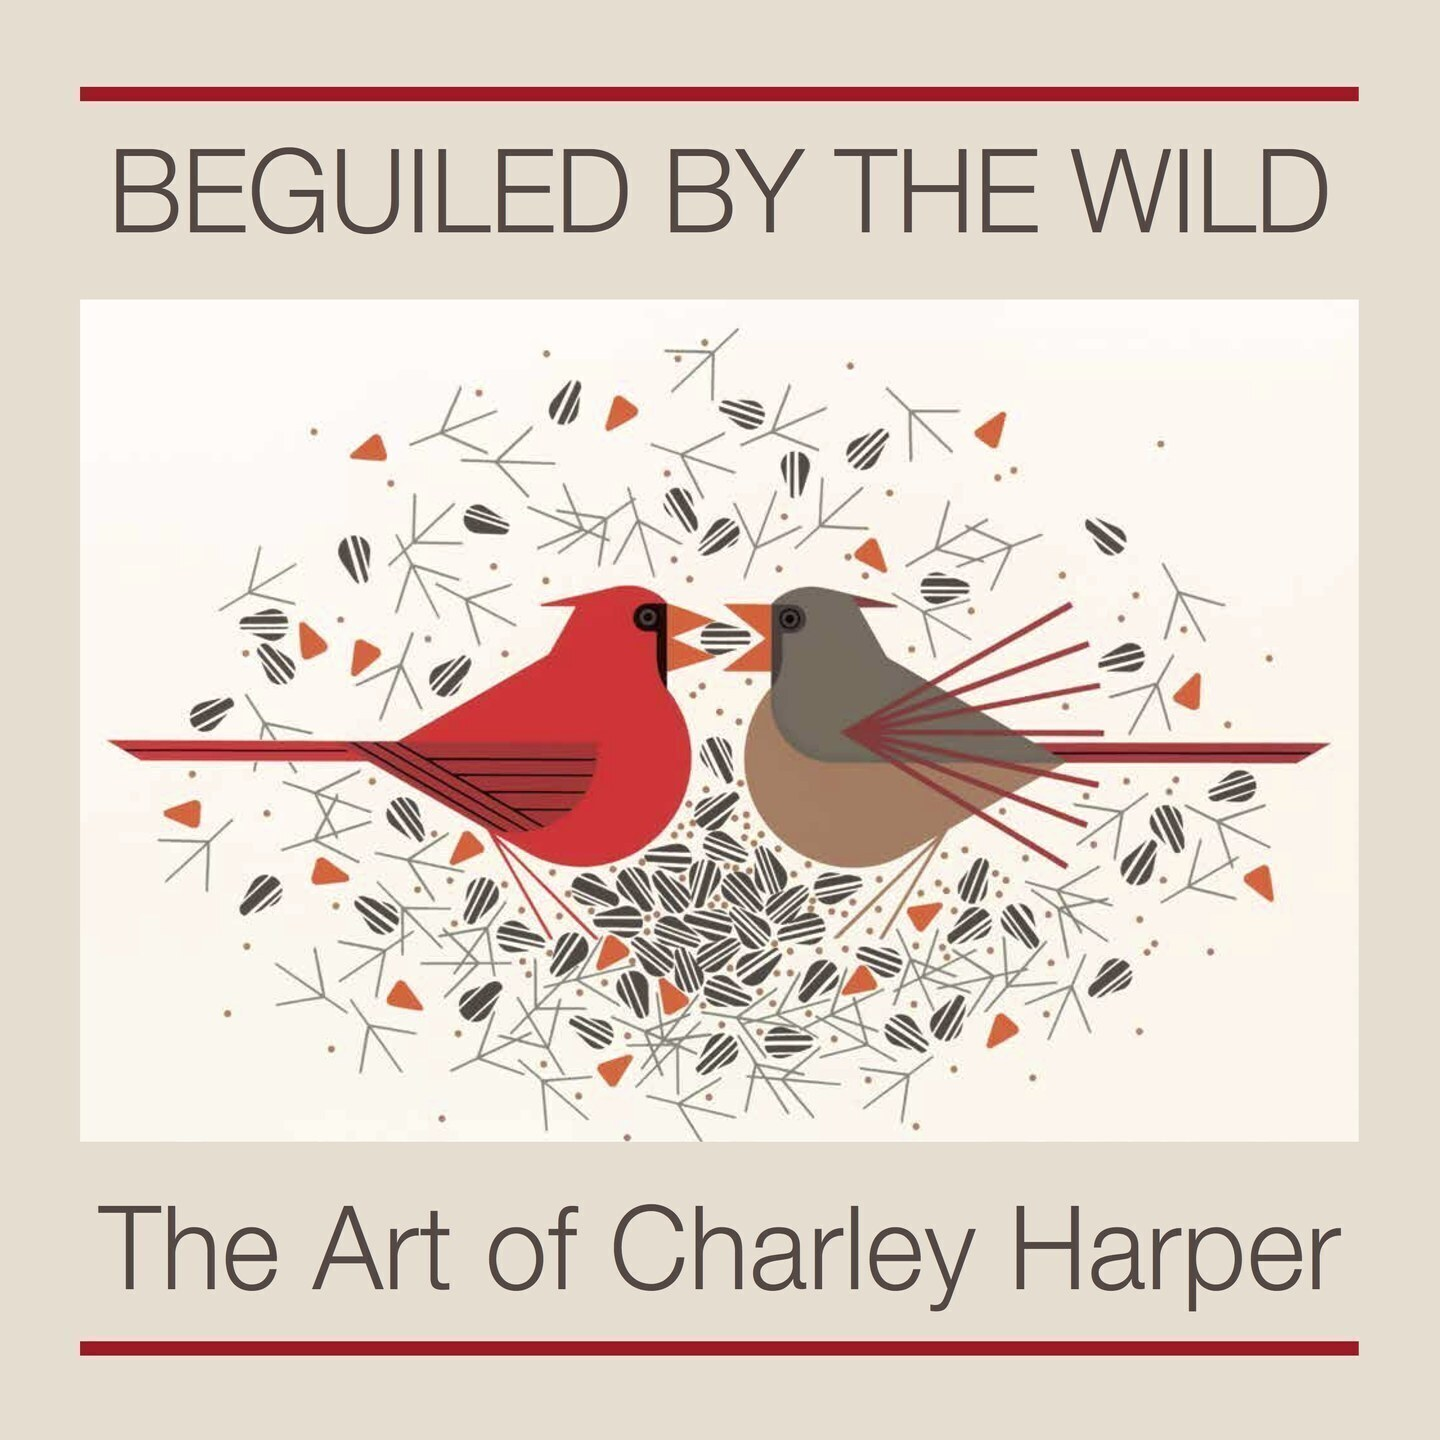 Charles//Charley Harper New 2018 Calendar Package Includes 5 Items